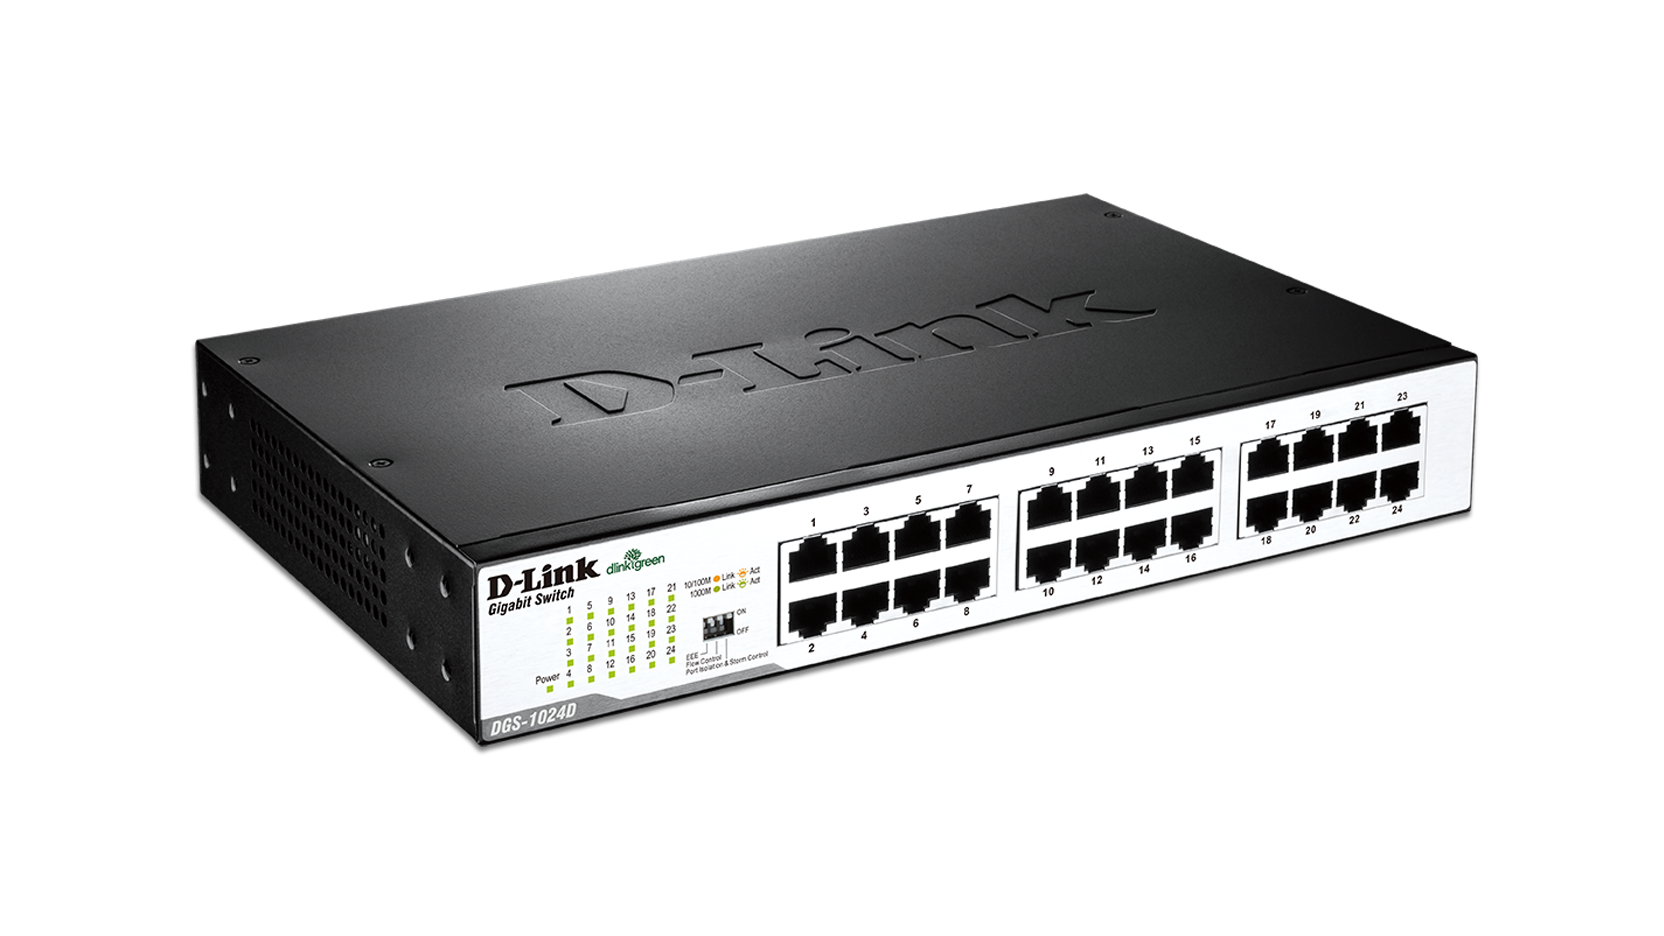 24 Port Gigabit Unmanaged Desktop Rackmount Switch Dgs